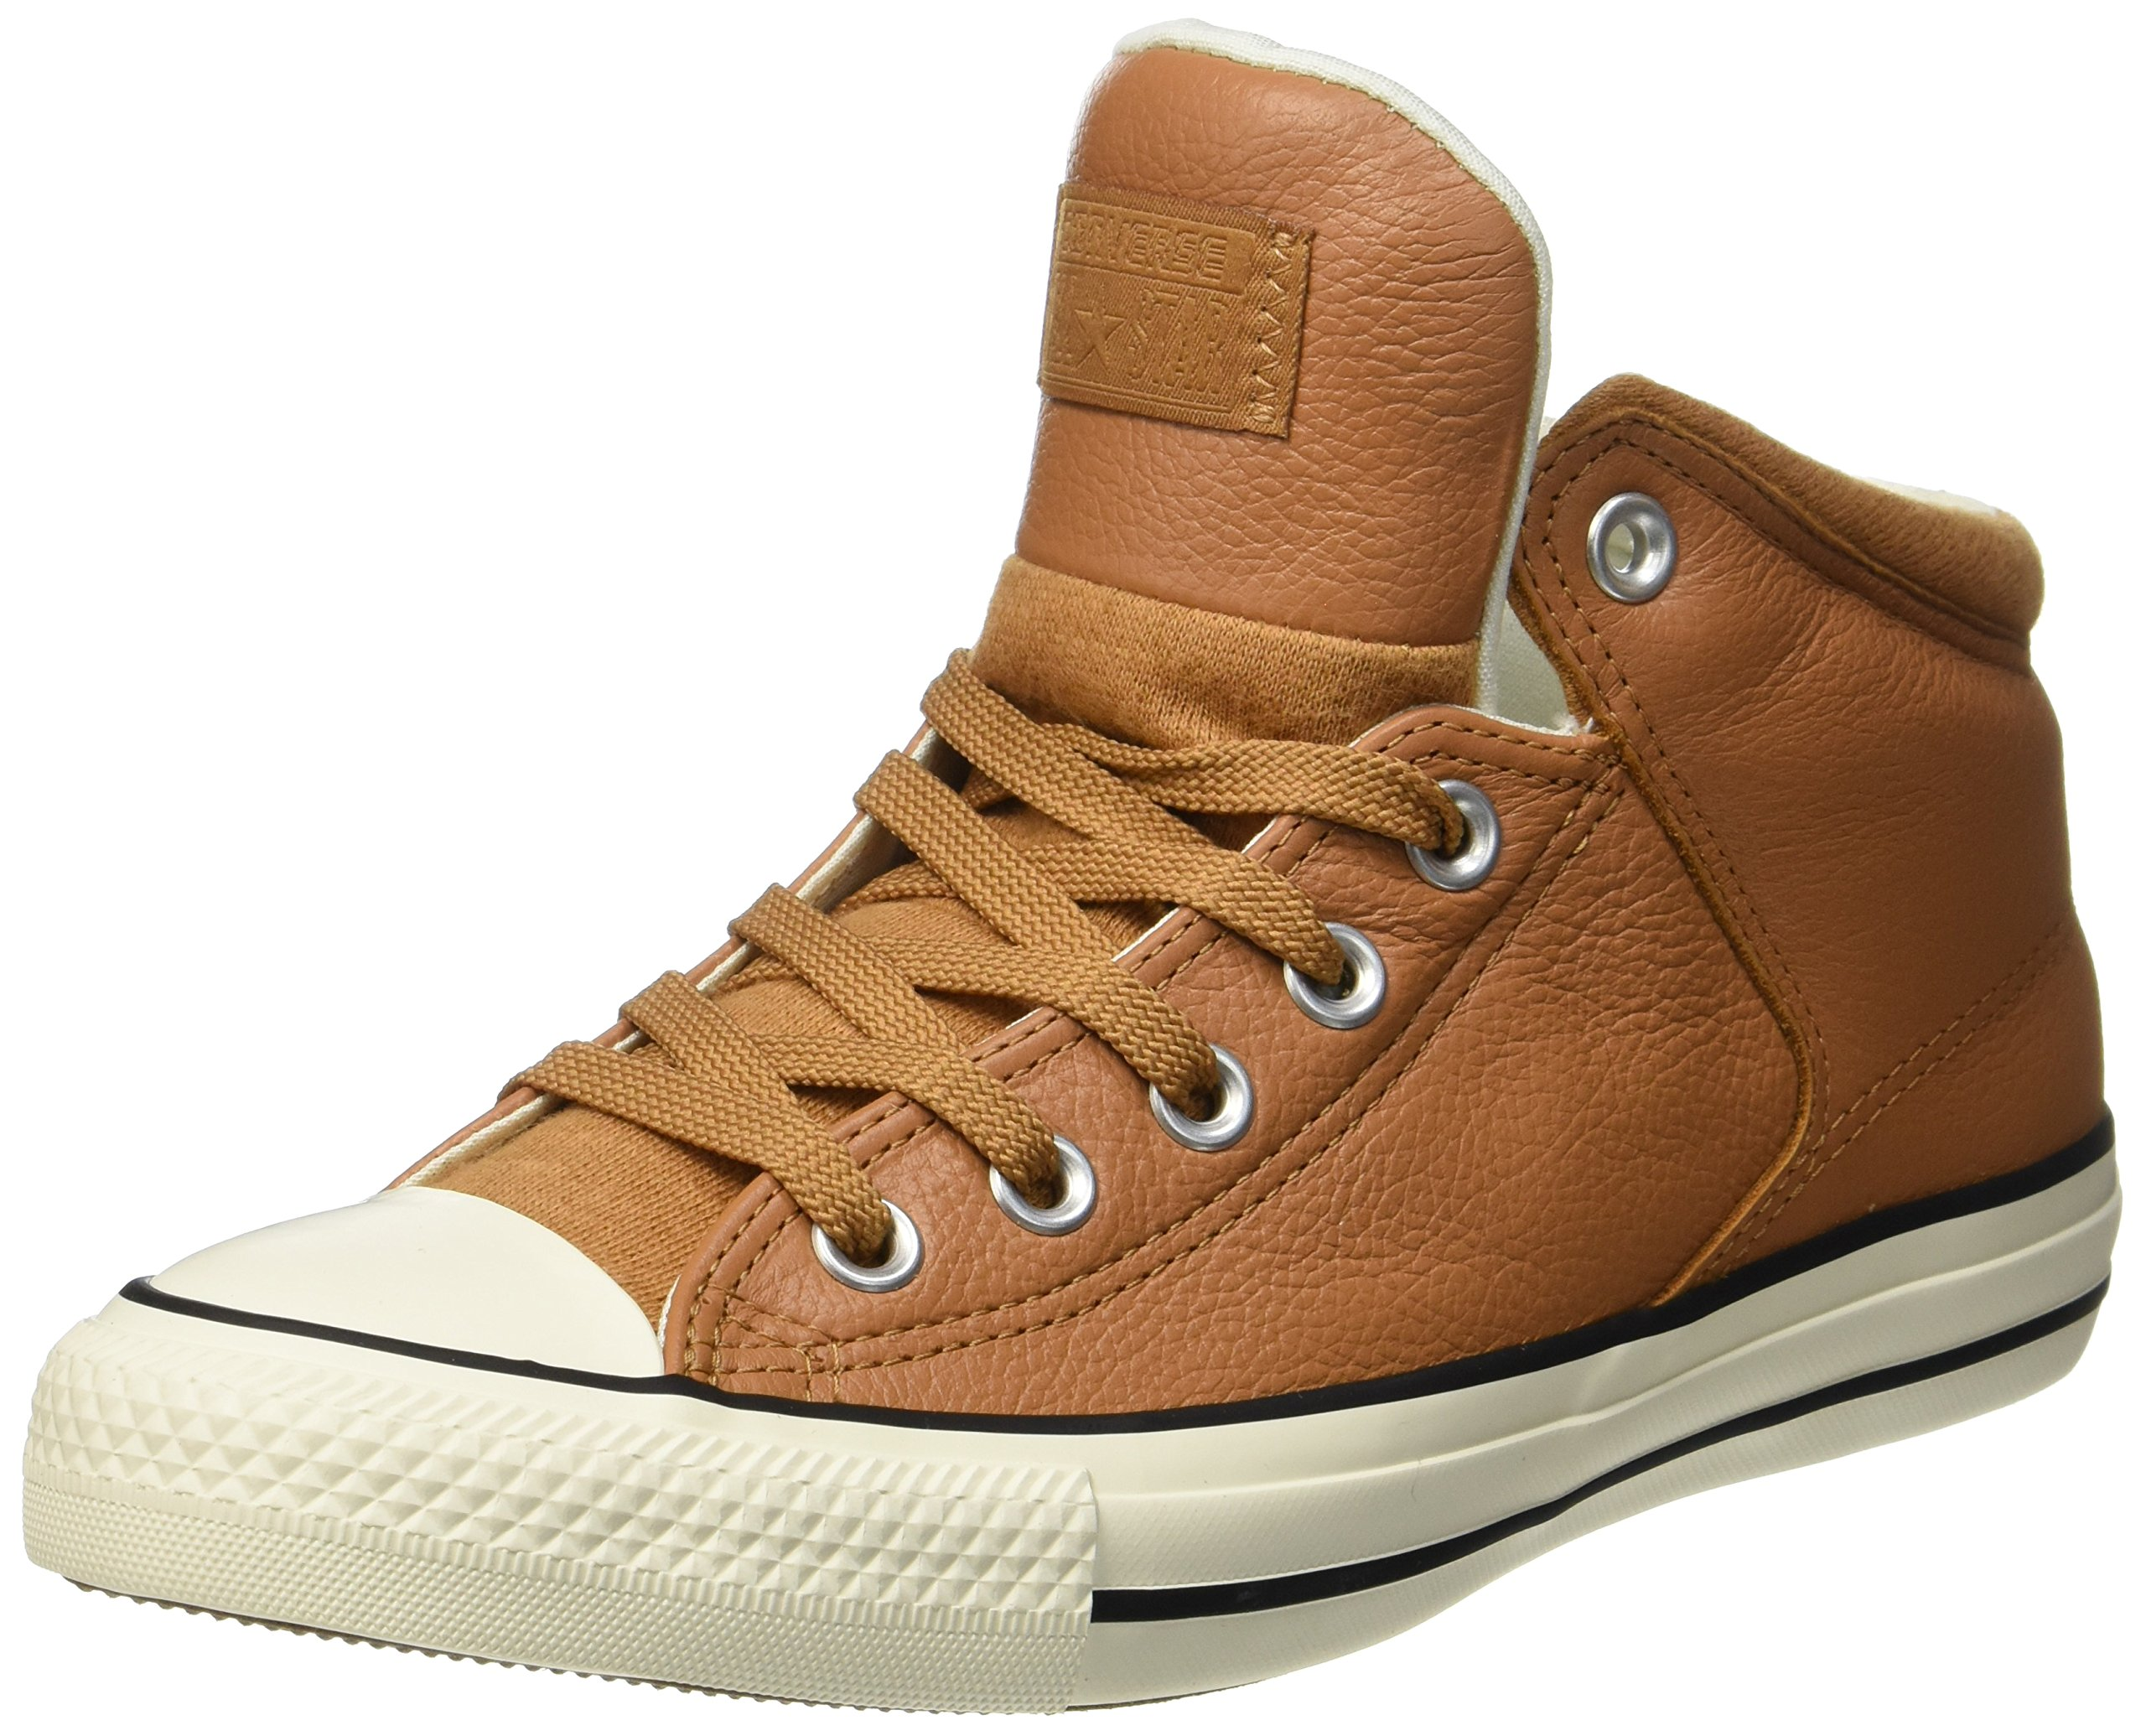 a551091d31a0 Galleon - Converse Mens Chuck Taylor All Star High Street Hi Raw Sugar  Egret Leather Trainers 9 US